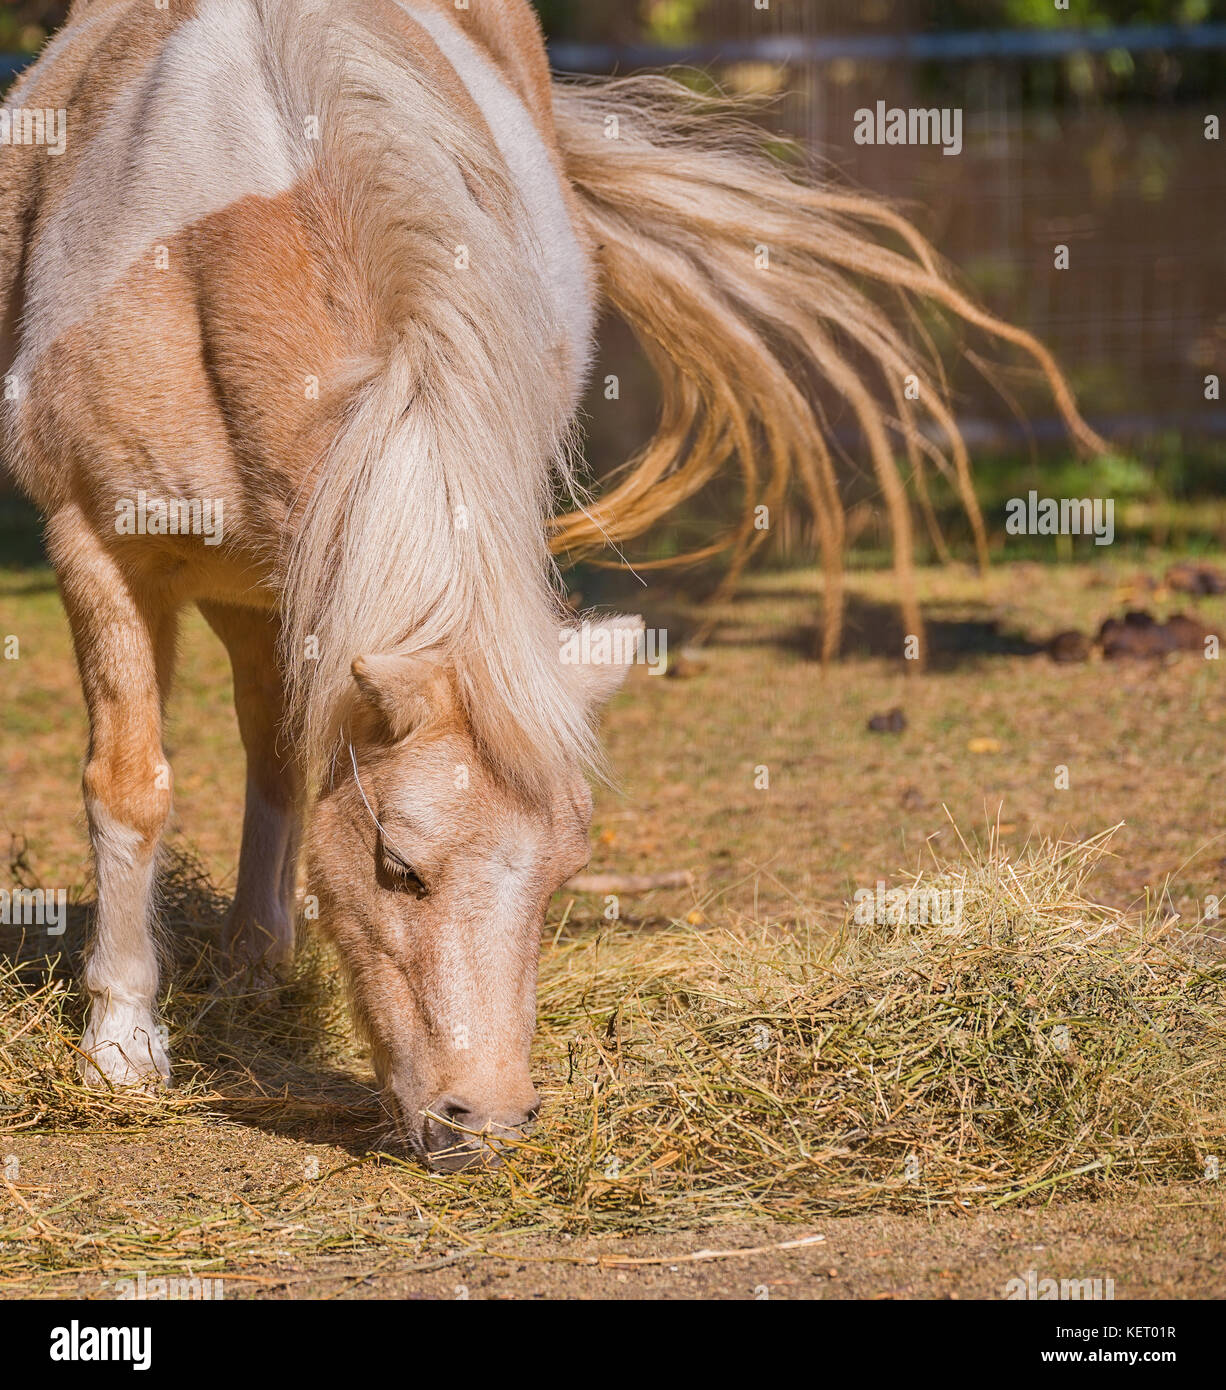 Pony eating straw while flicking its tail - Stock Image